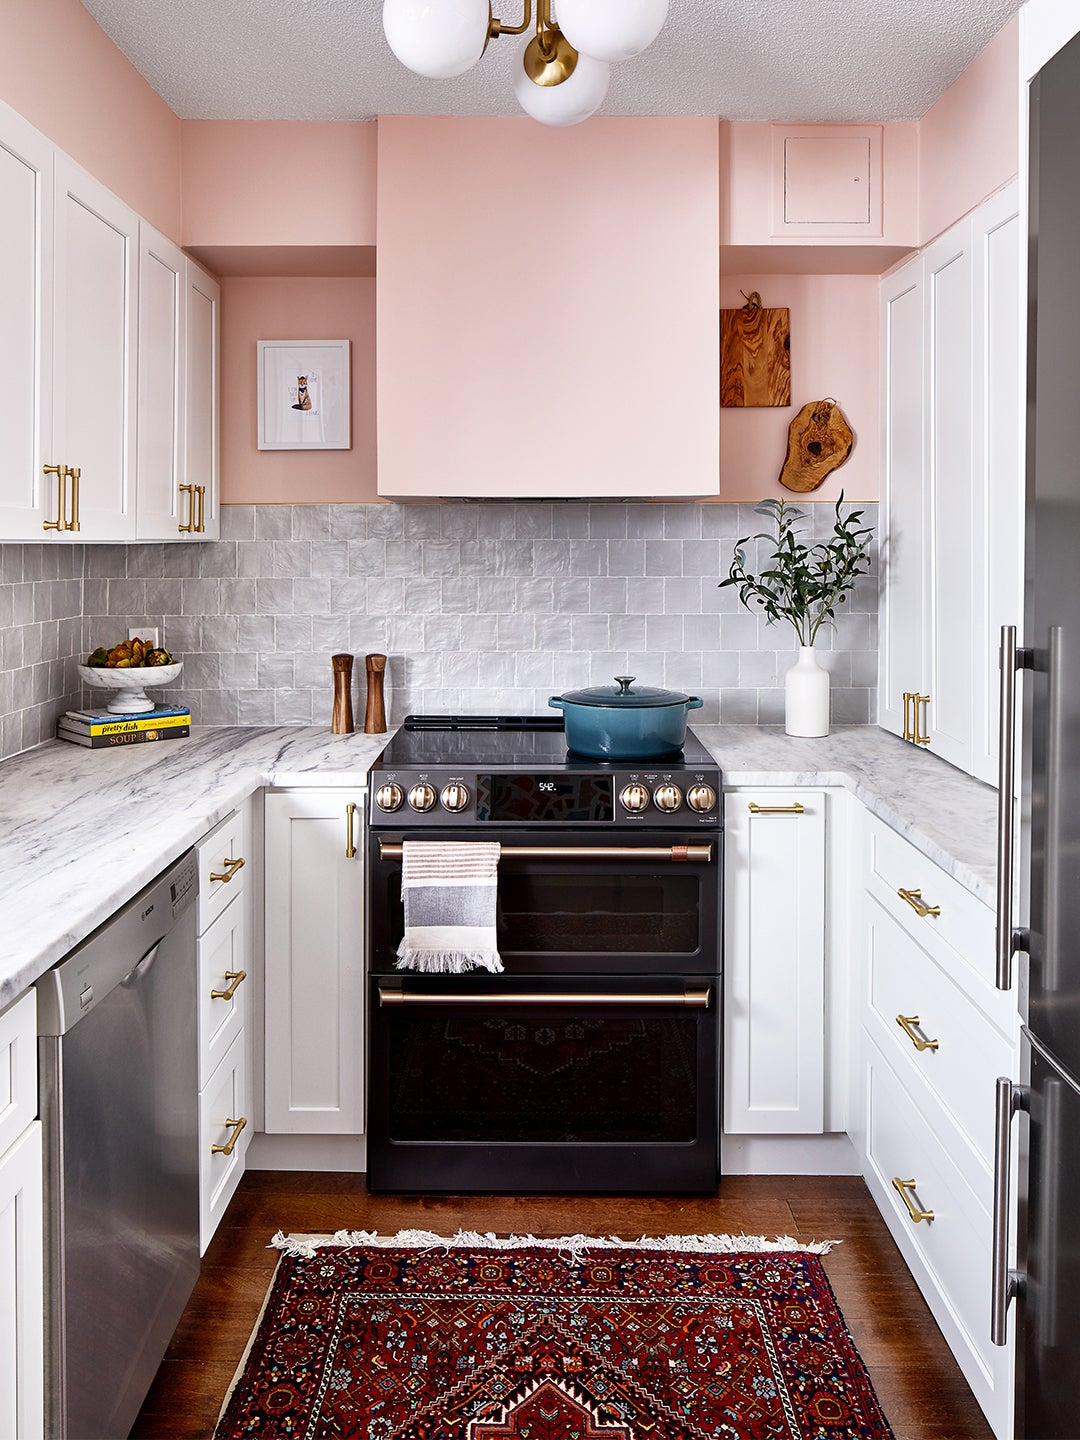 00-FEATURE-upper-kitchen-cabinets-domino